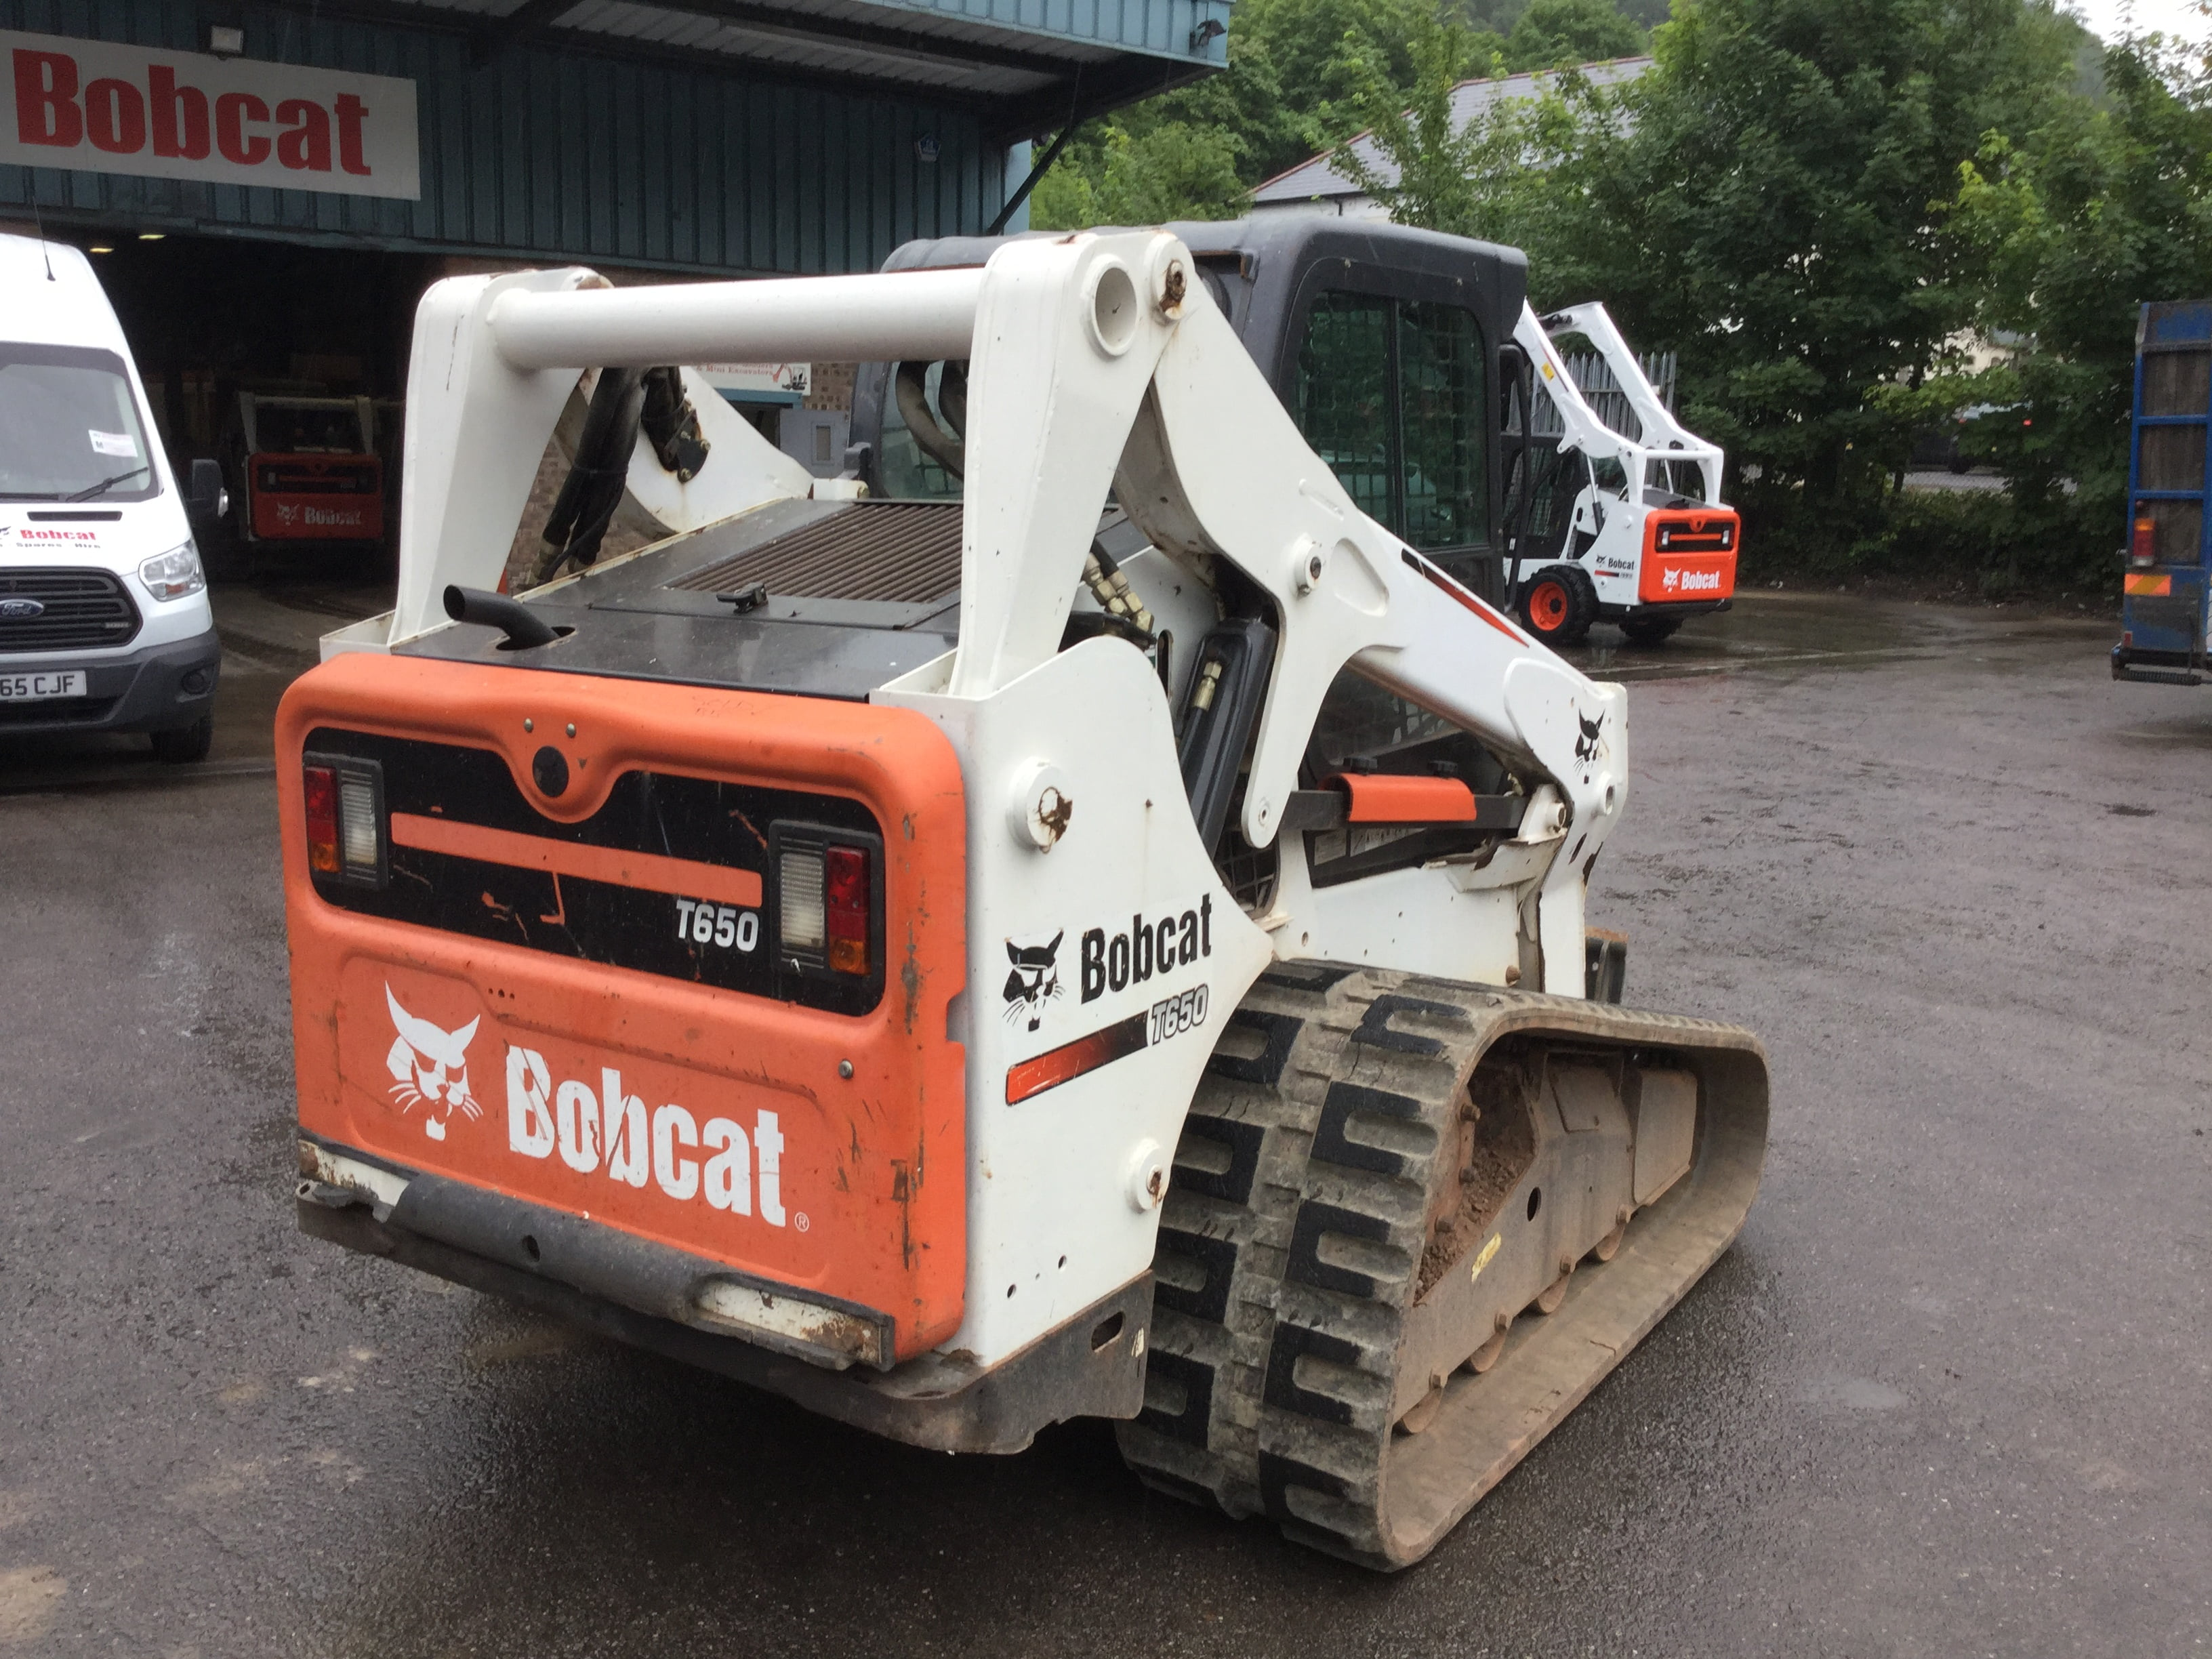 Used Plant Loaders Archives - Border Bobcat Wales | bobcat ...